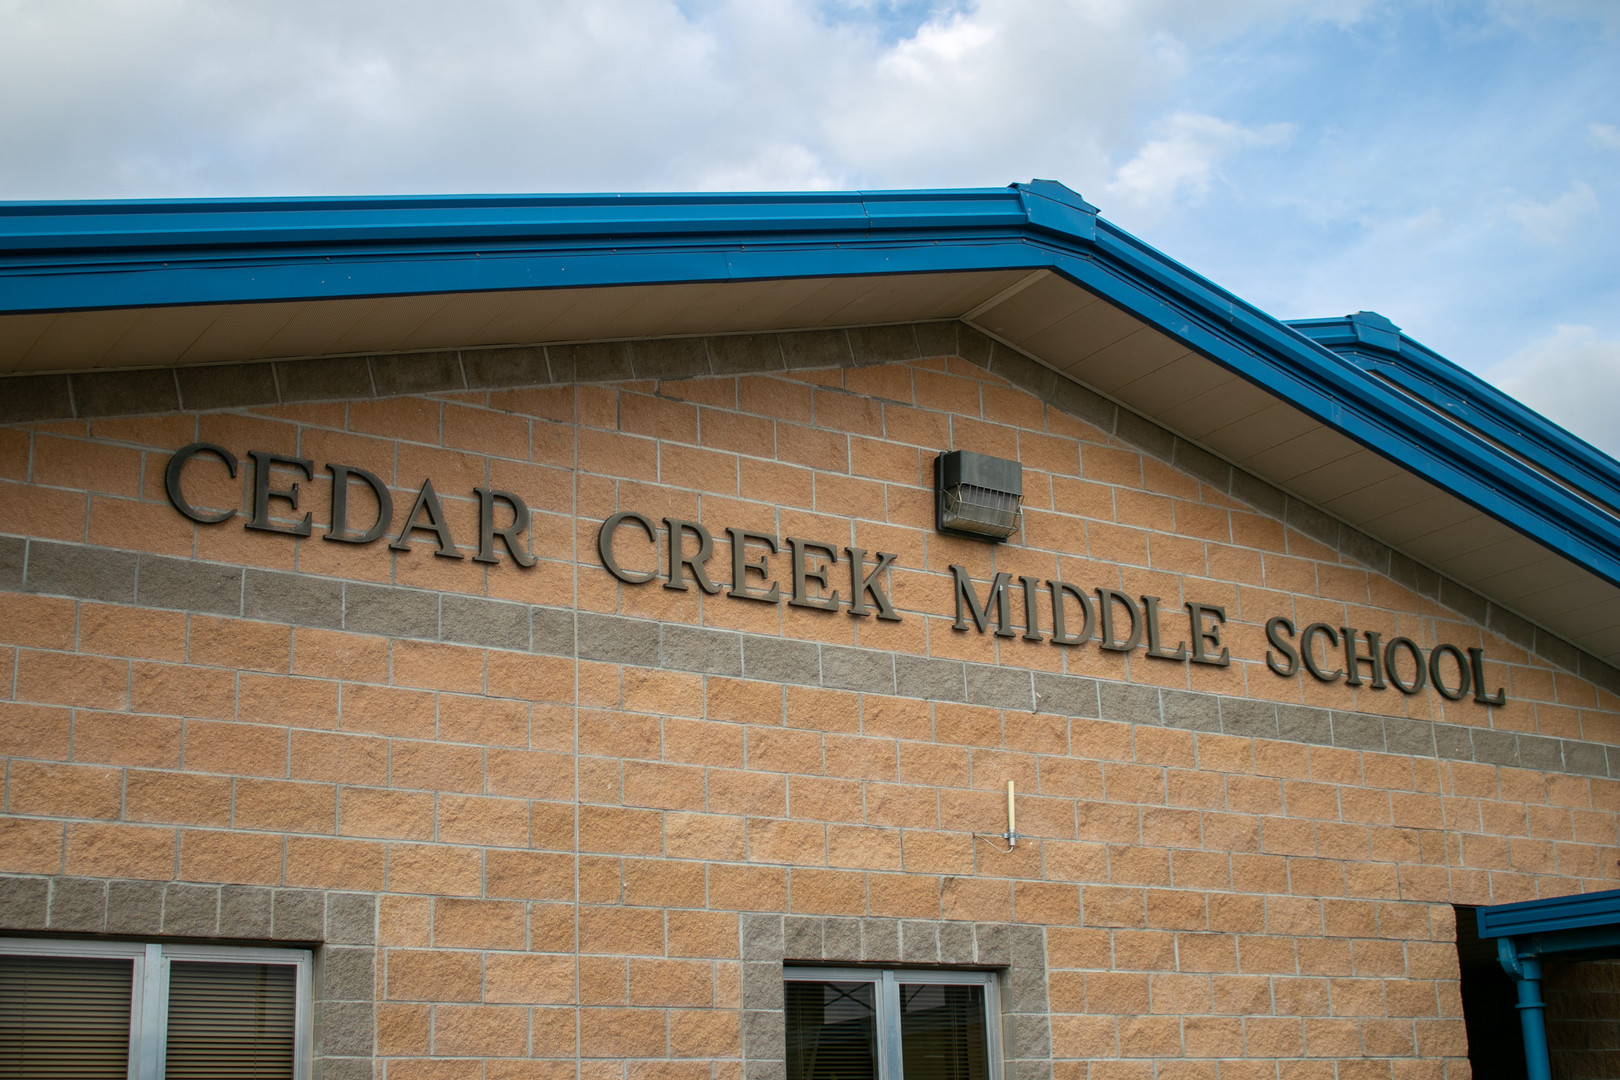 Cedar Creek Middle School